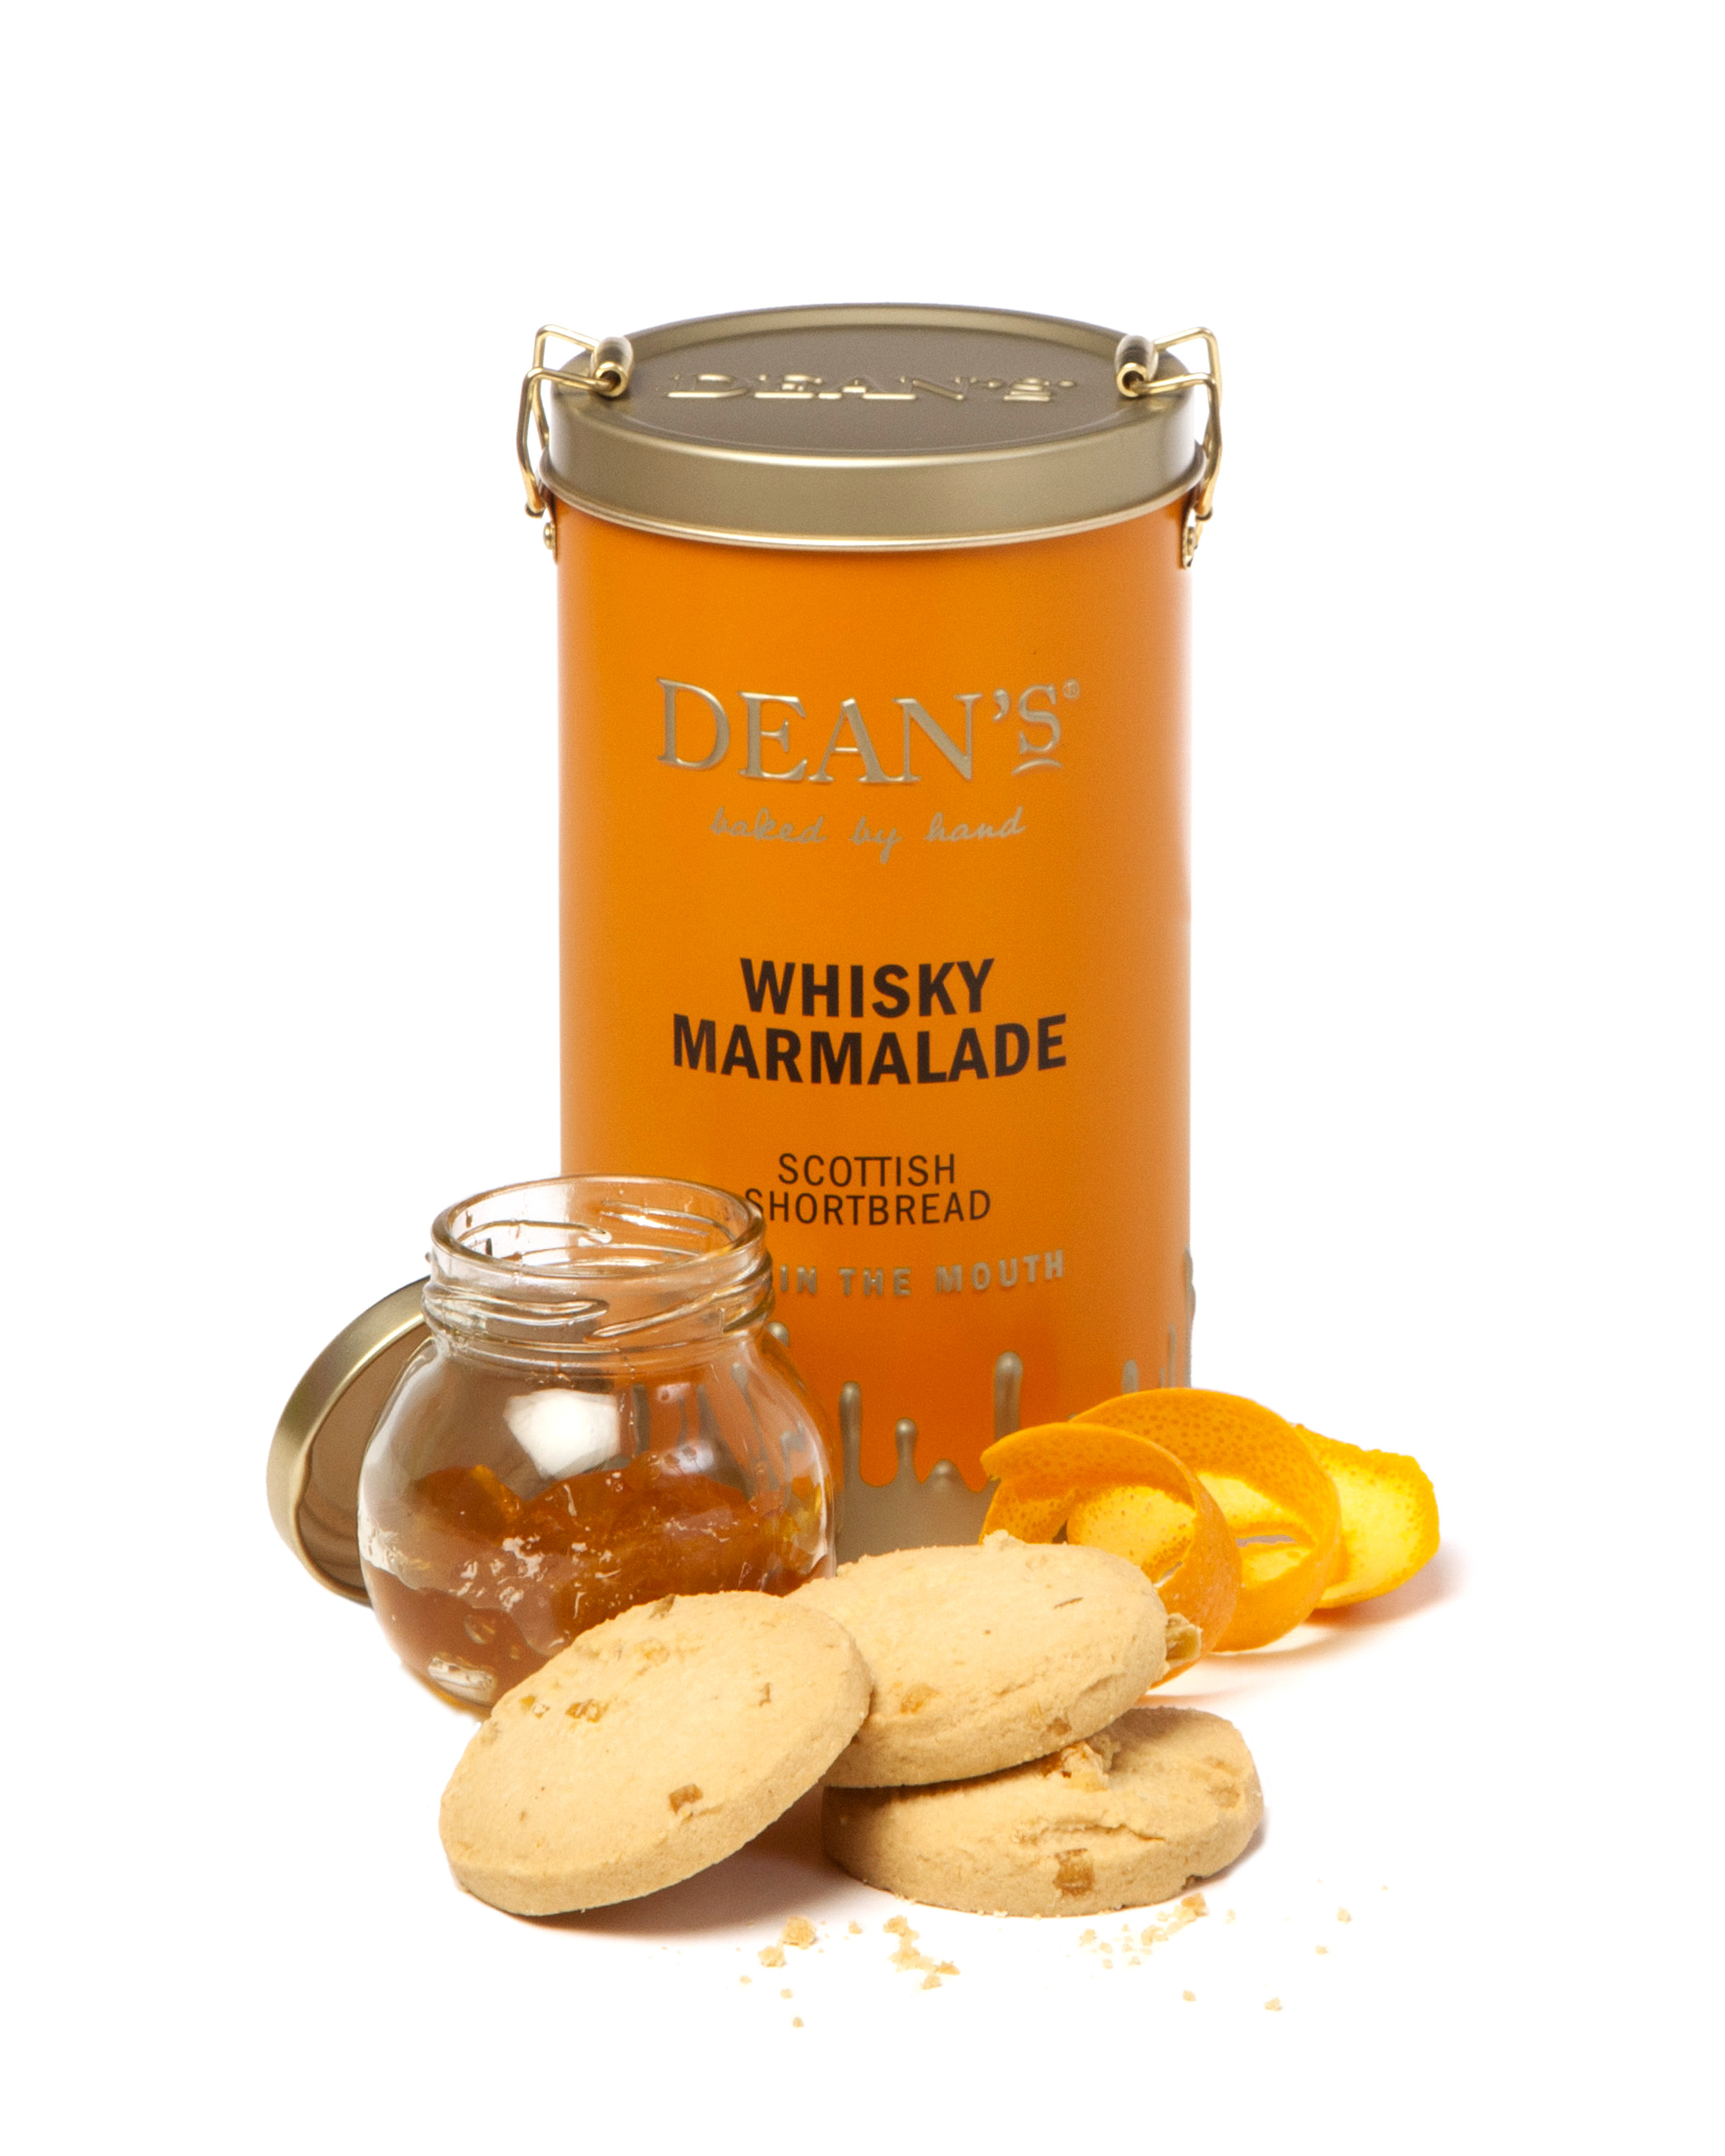 DEAN'S WHISKY MARMALADE SCOTTISH SHORTBREAD (150G)-7778